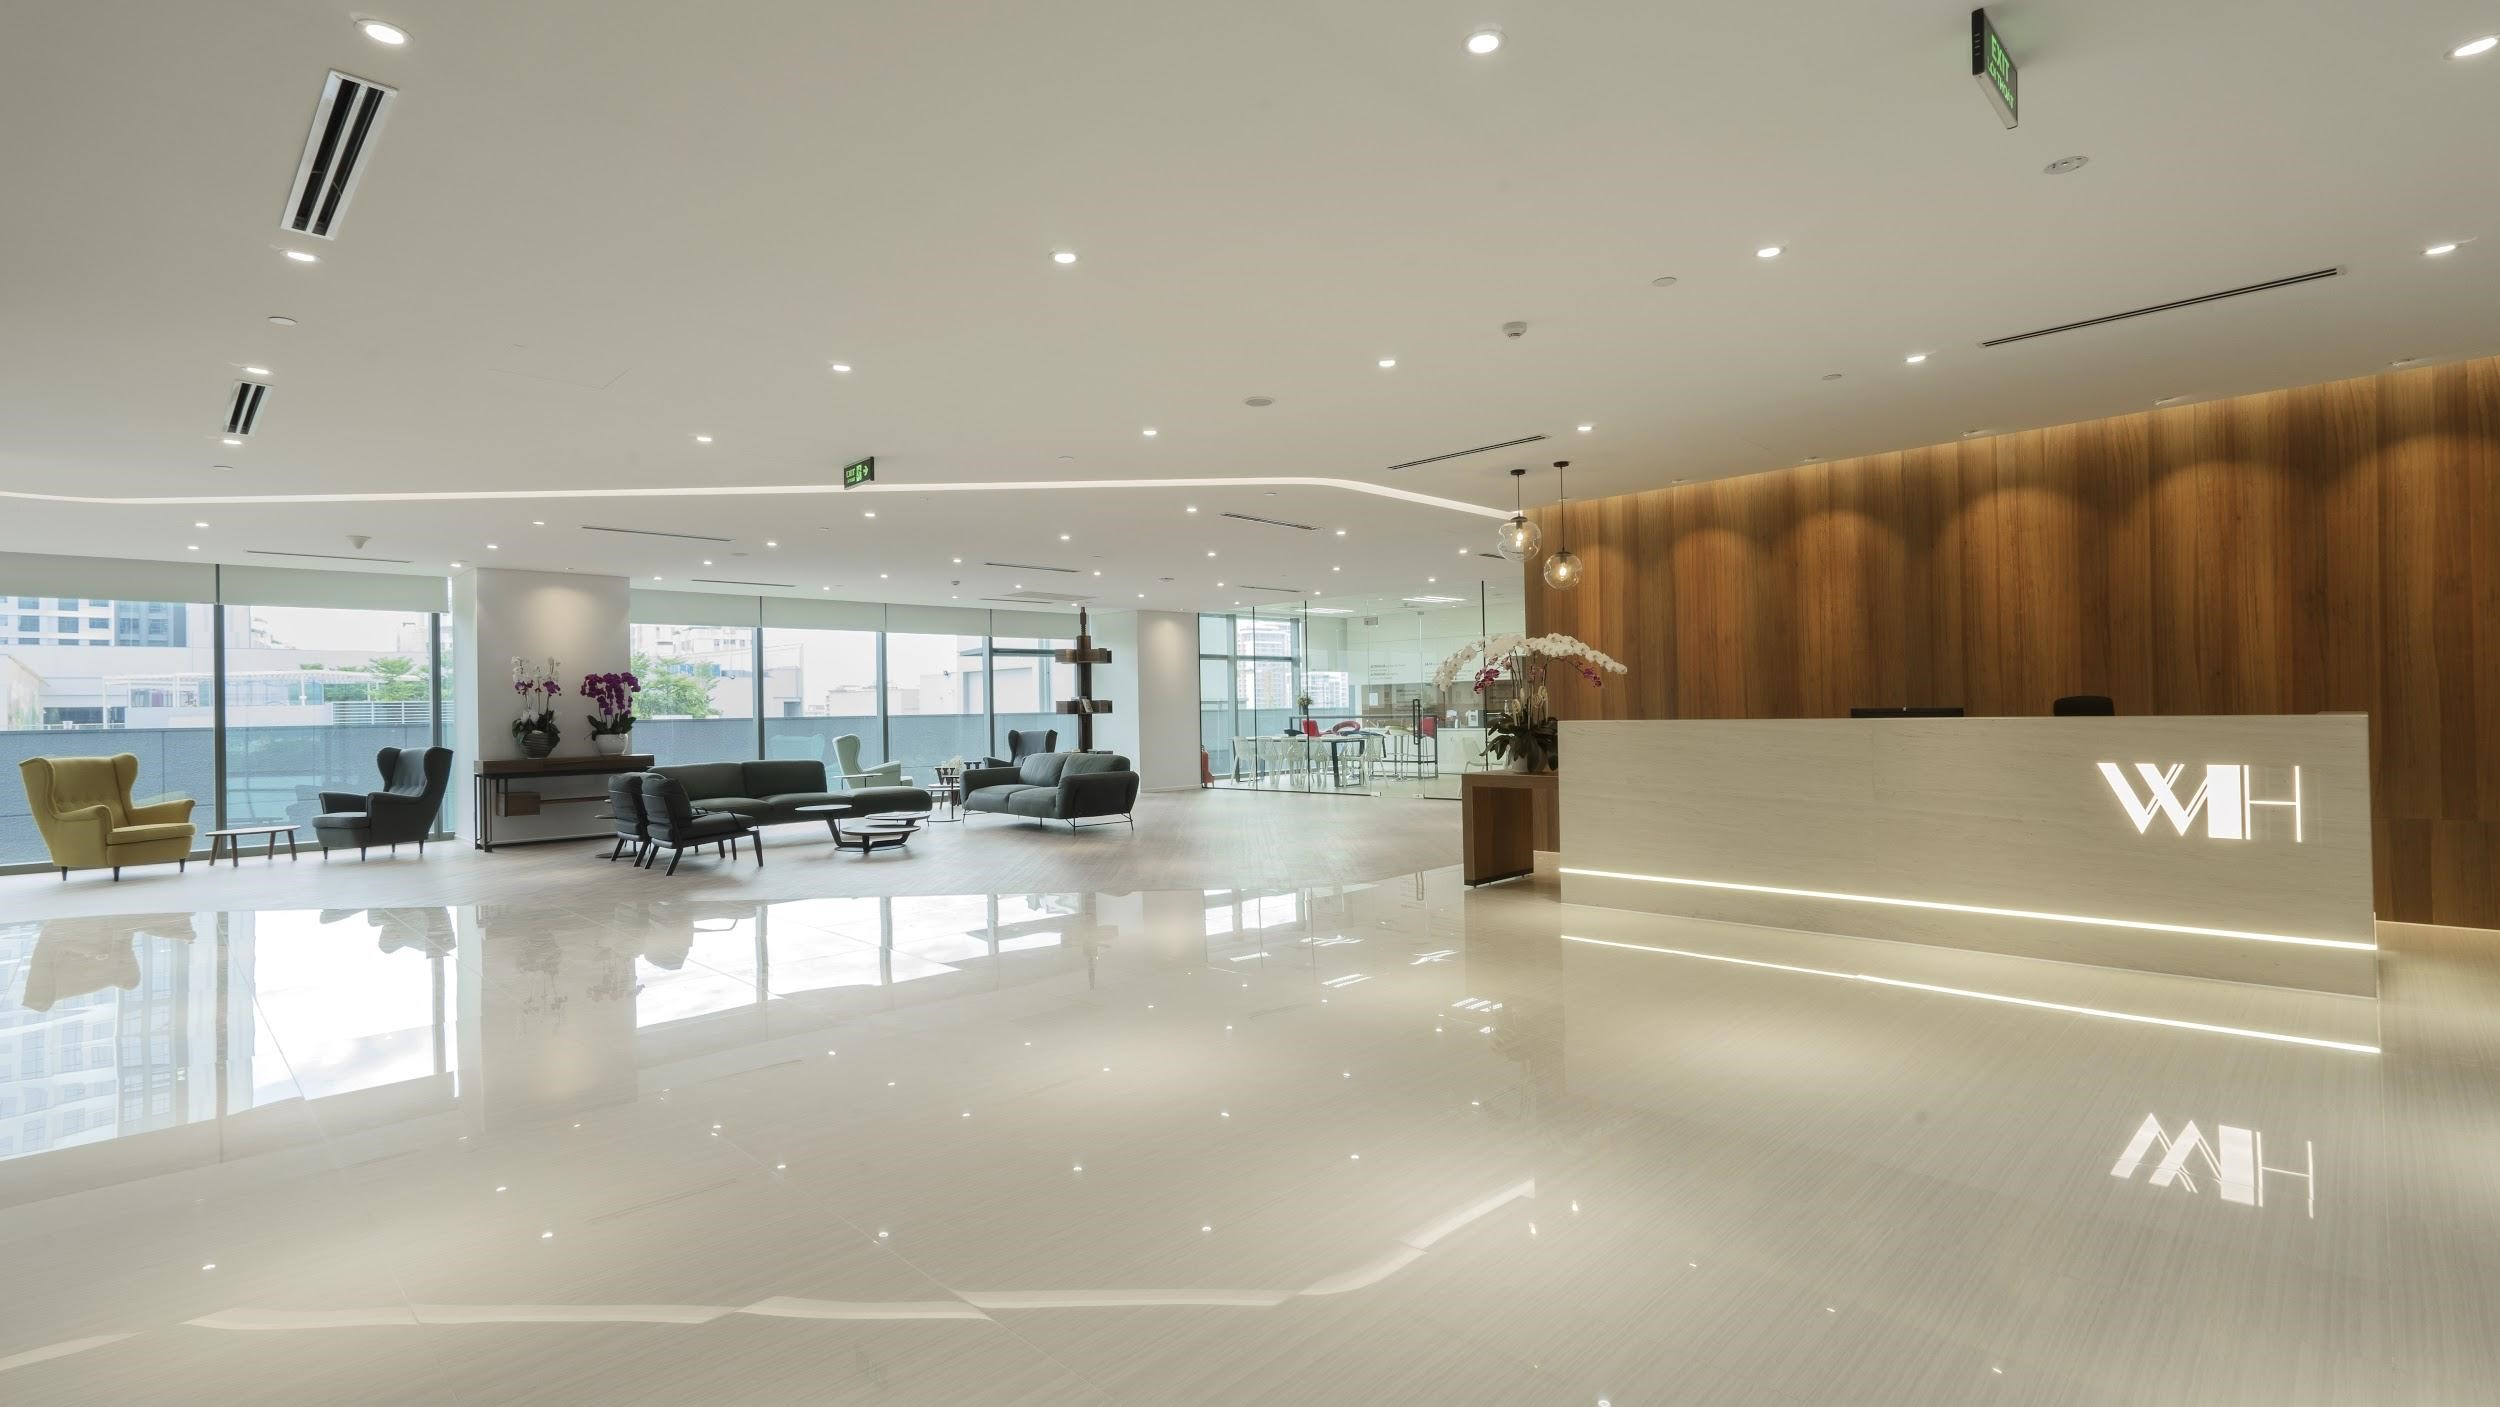 The reception of Wellhunt office